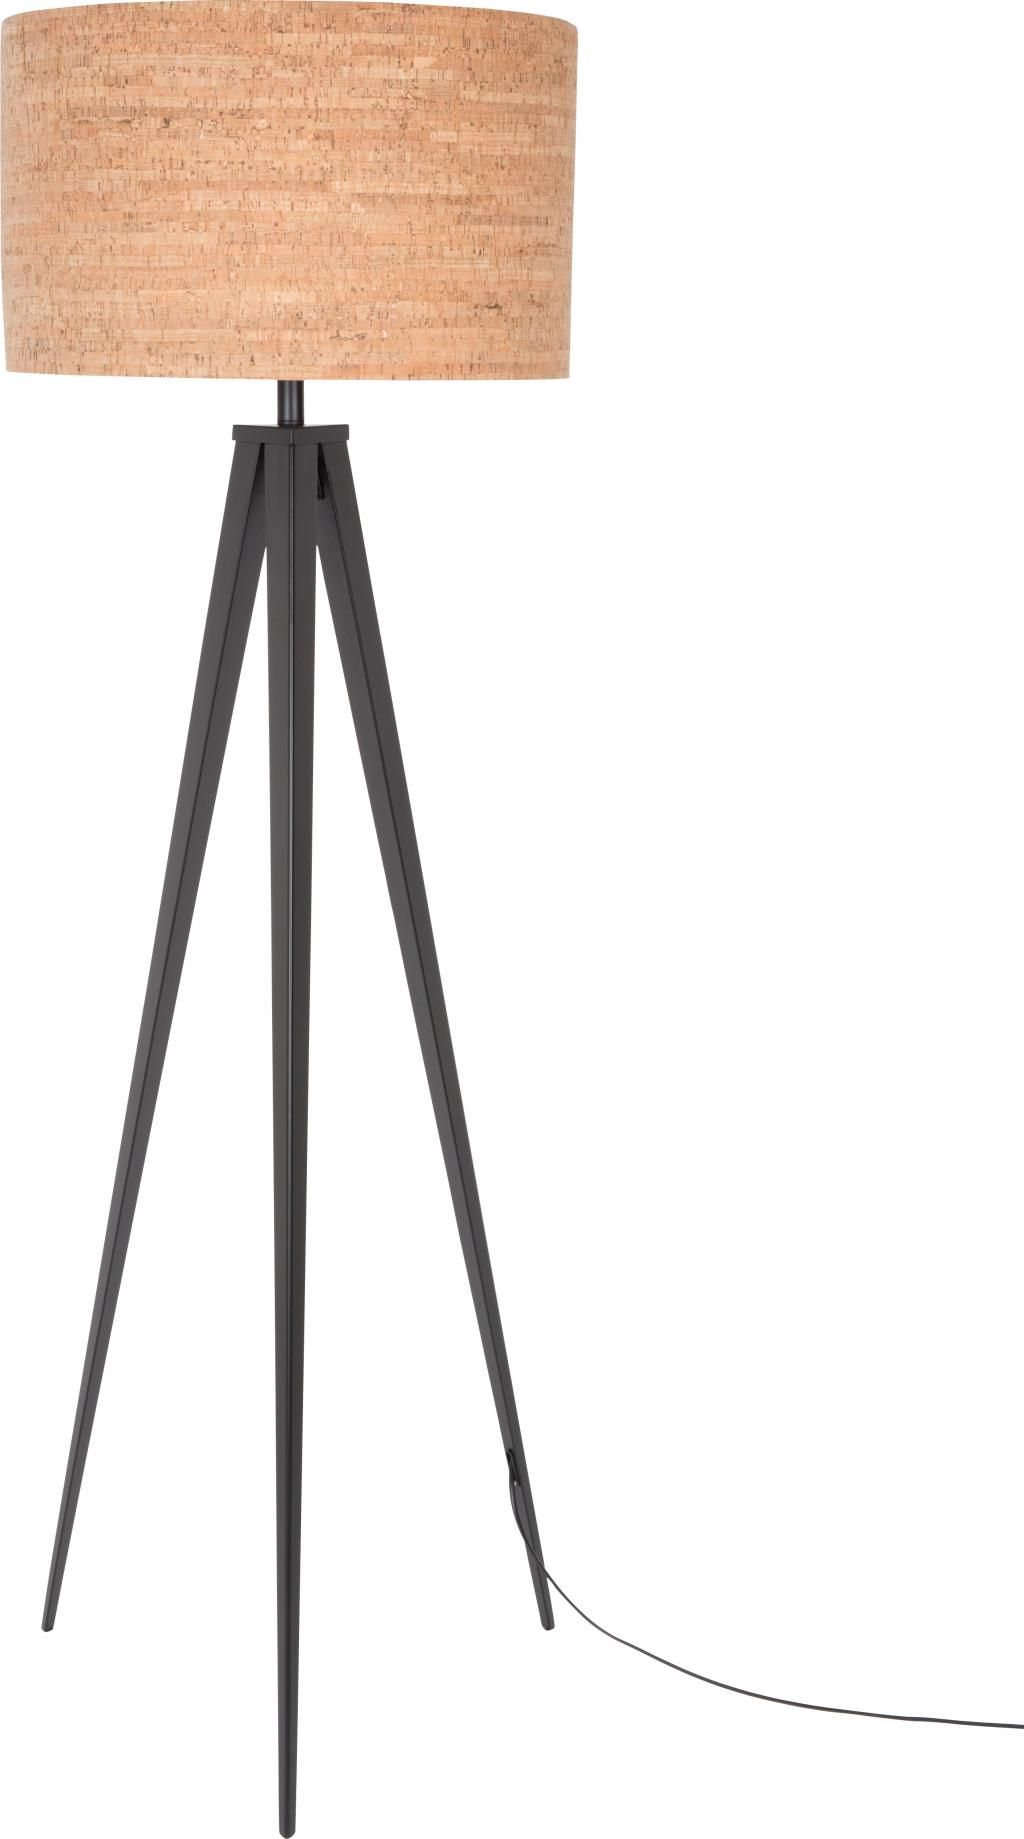 zuiver stehlampe kork tripod schwarz. Black Bedroom Furniture Sets. Home Design Ideas